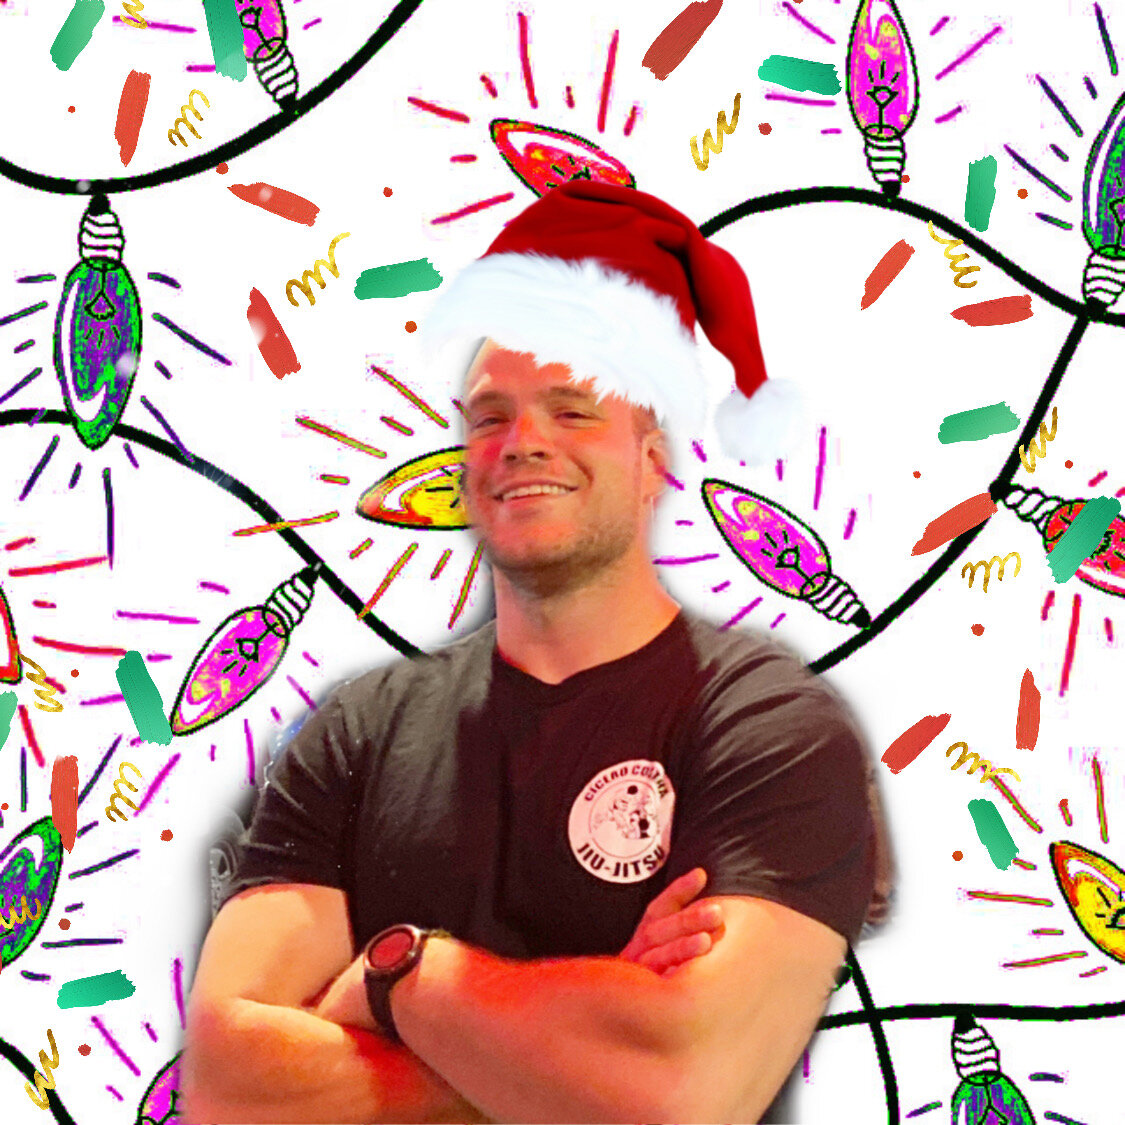 Dr. Nick's Challenge In The Spirit Of The Holidays